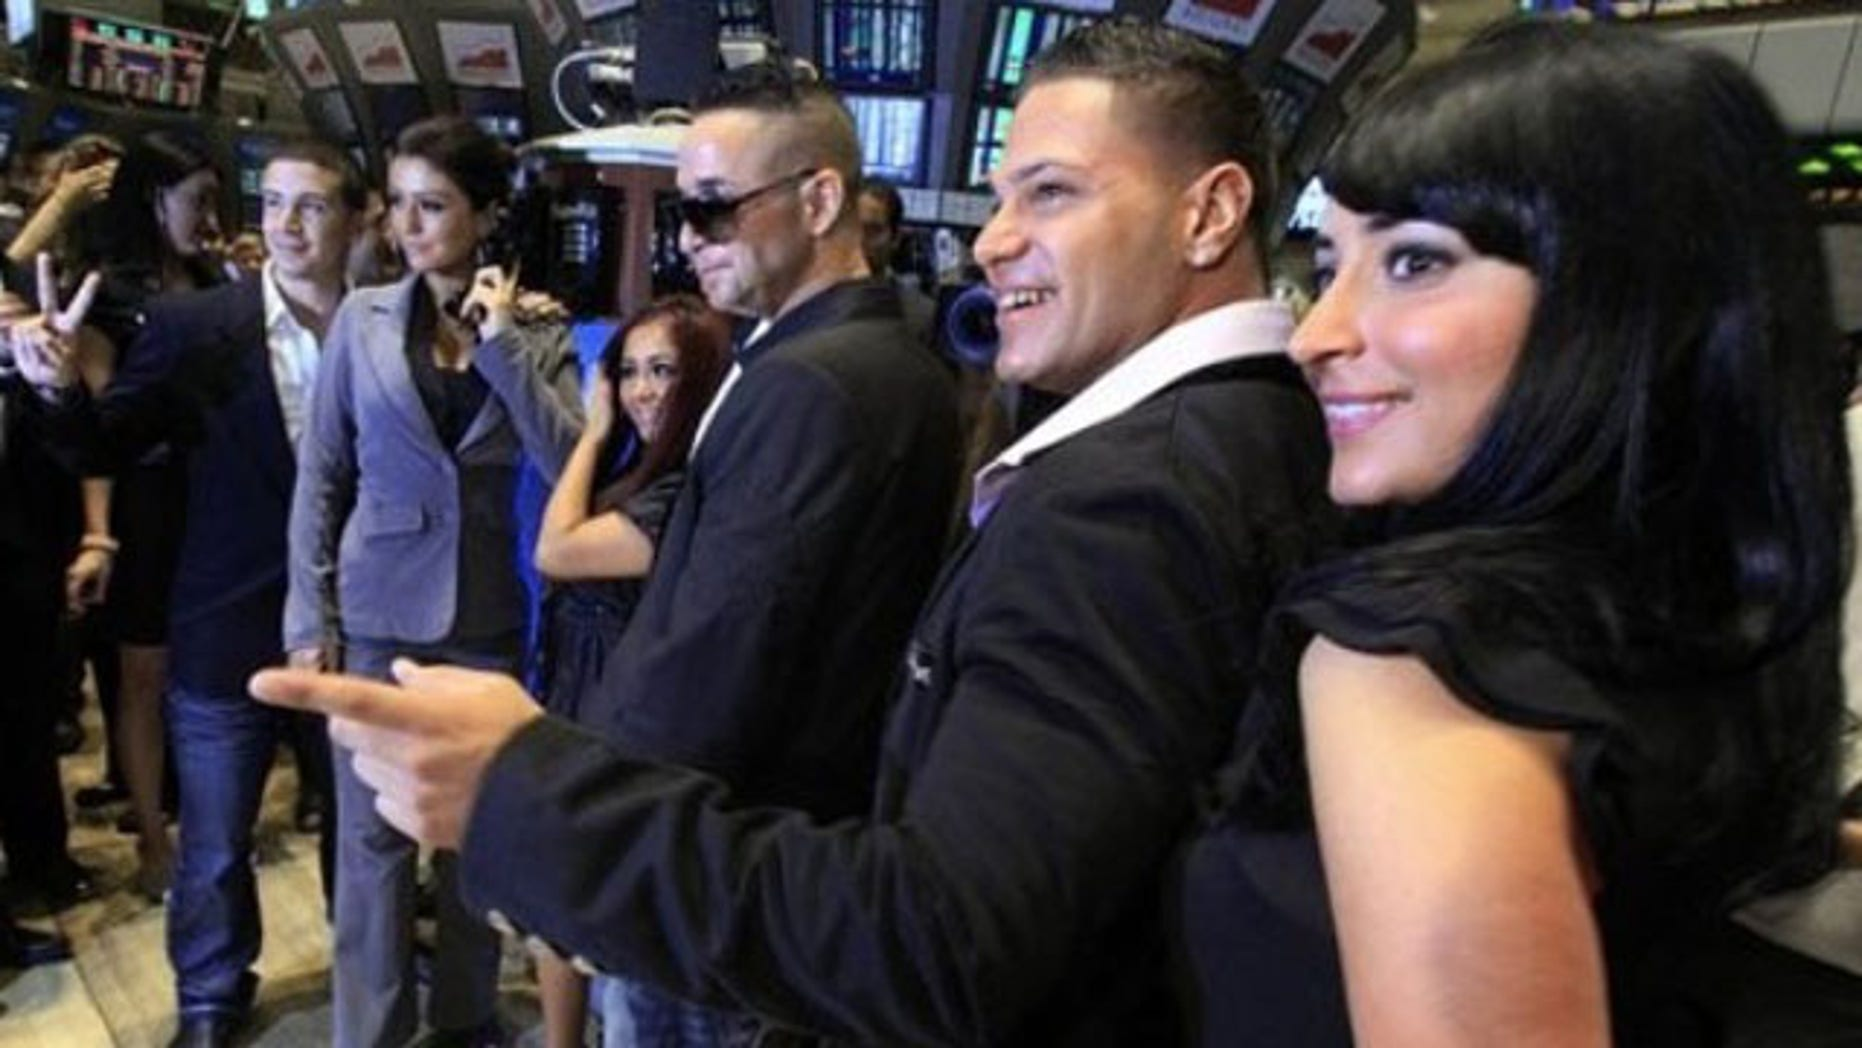 """July 27: Cast members of MTV's """"Jersey Shore"""" reality series pose for photos after ringing the opening bell of the New York Stock Exchange. They are, from left: Vinny Guadagnino; Jenni """"J-Woww"""" Farley; Nicole """"Snooki"""" Polizzi; Michael """"The Situation"""" Sorrentino; Ronnie Ortiz; Angelina """"Jolie"""" Pivarnick. (AP Photo/Richard Drew)"""